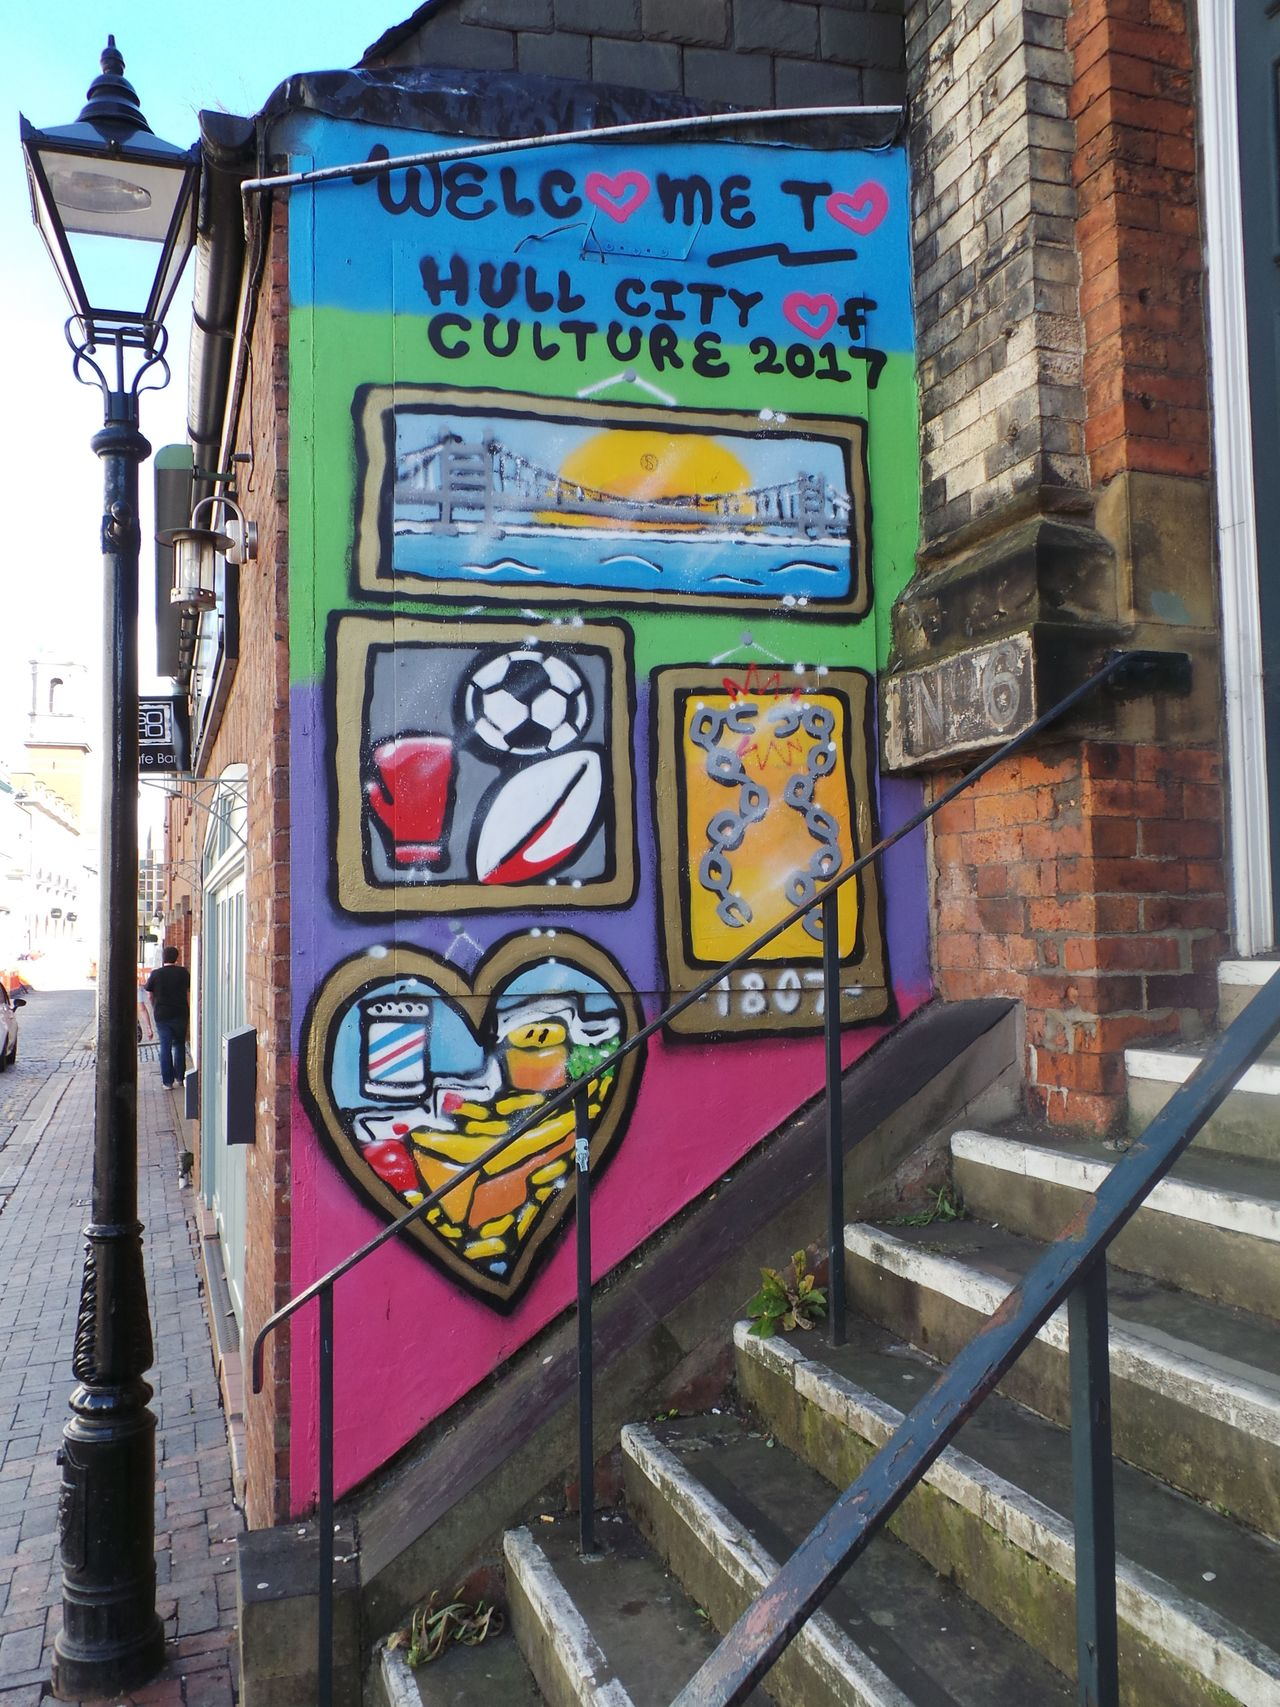 Graffiti Art Built Structure Creativity Architecture Art And Craft Building Exterior Sidewalk City Public Transport Outdoors Day Multi Colored City Life No People Hull City Of Culture 2017 Hull 2017 Hull City Of Culture 2017